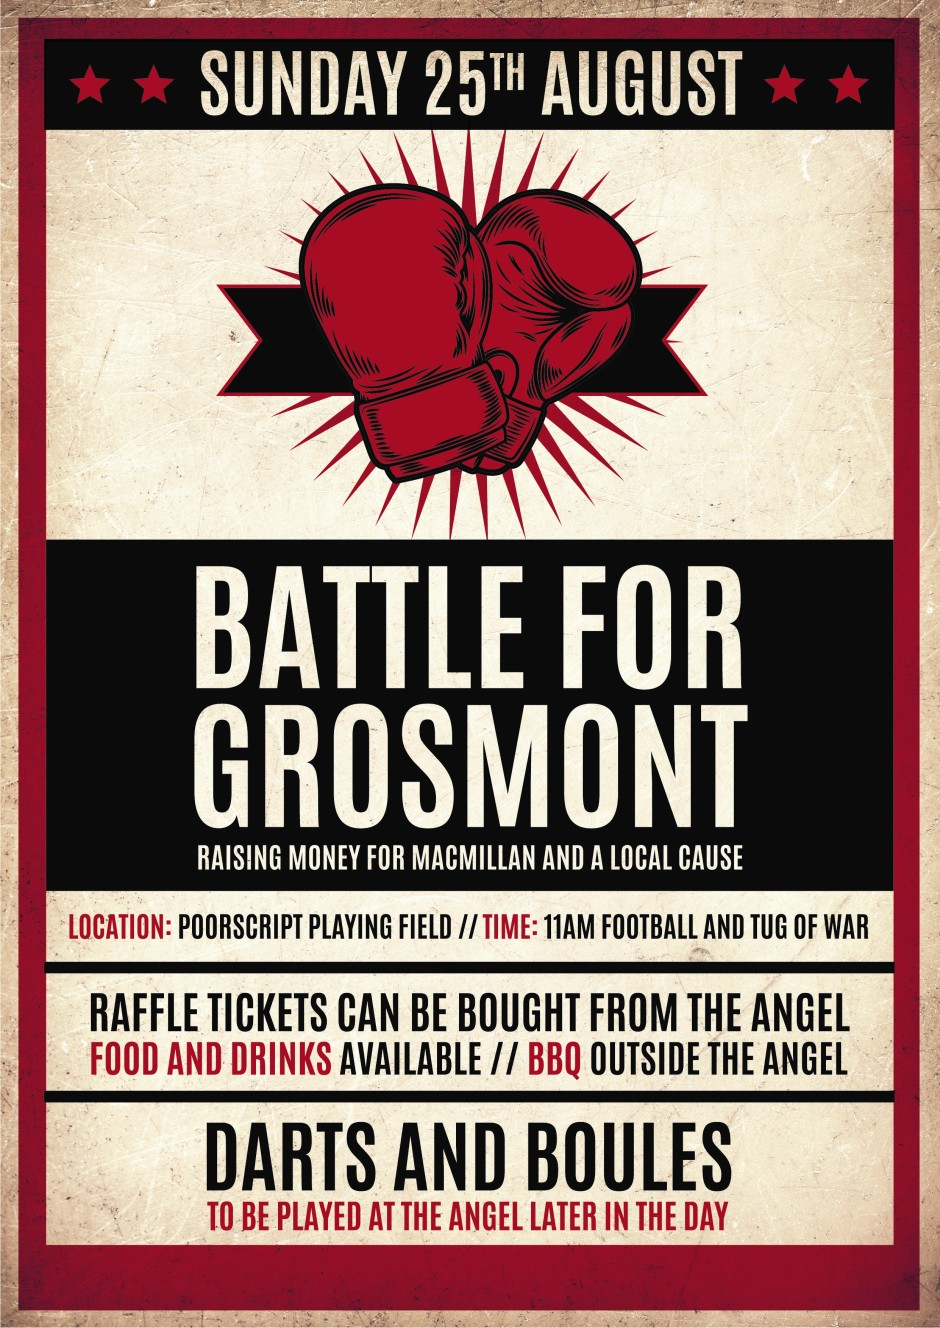 Battle for Grosmont 2019